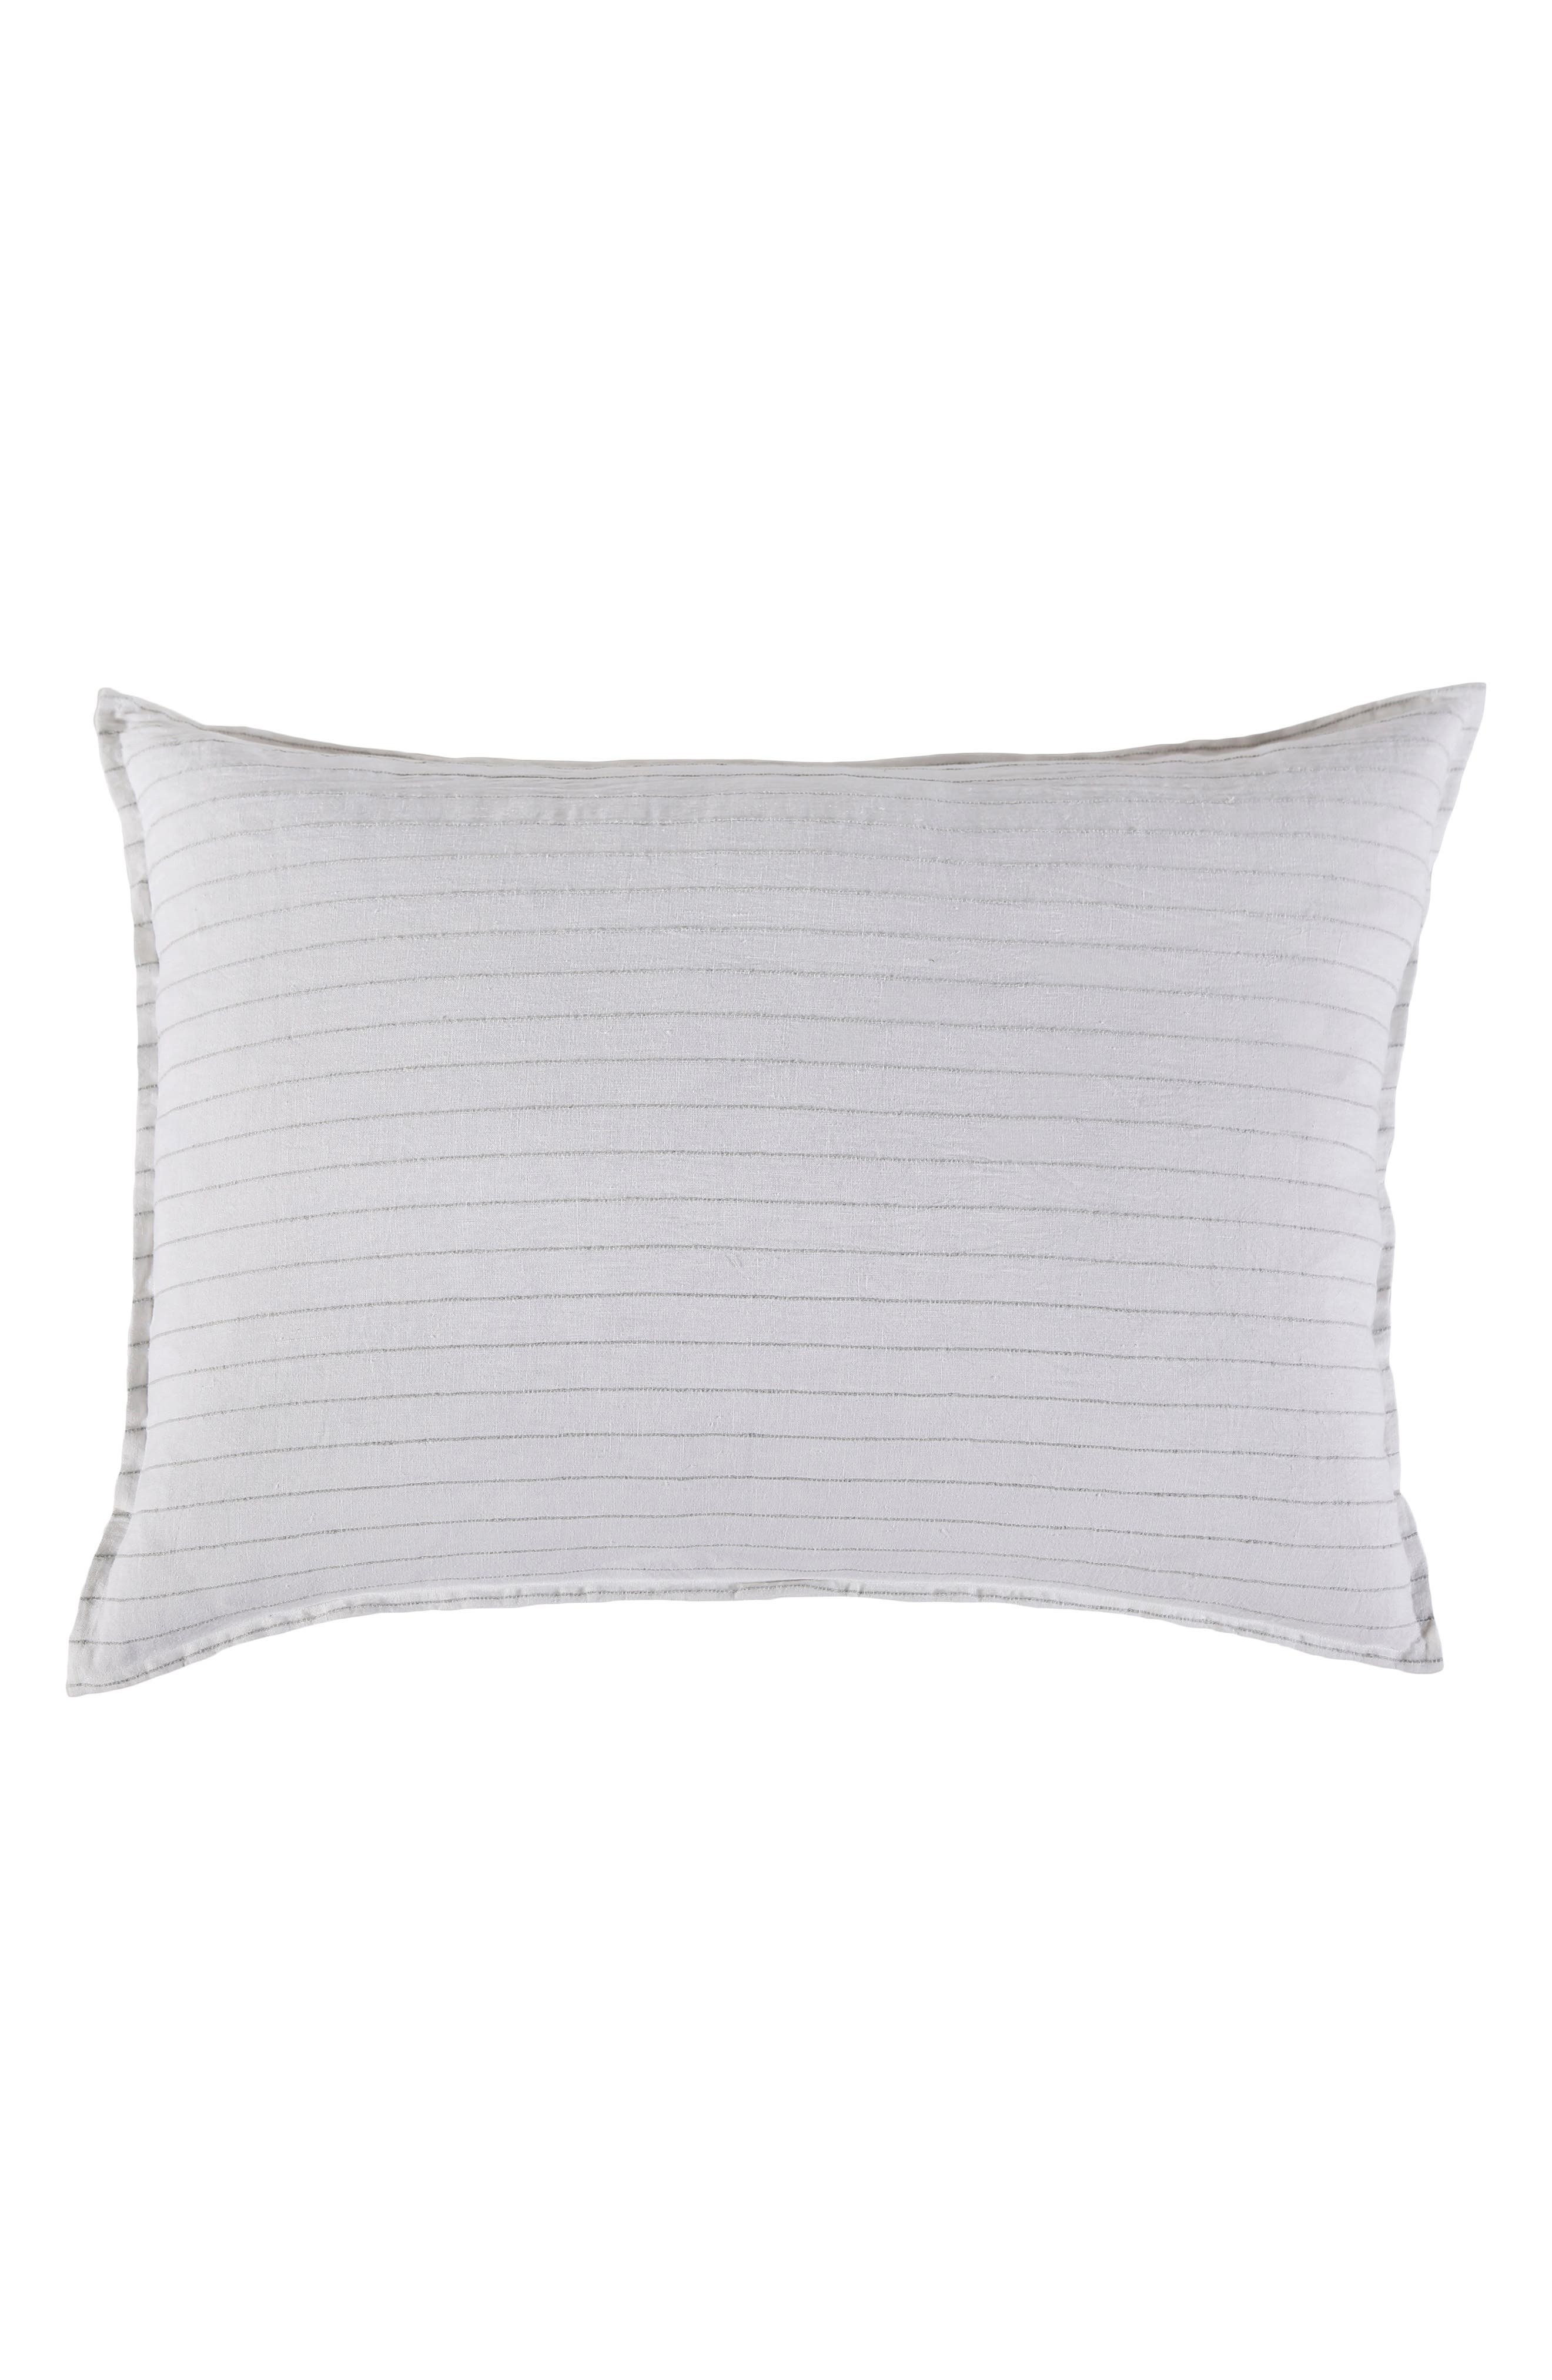 POM POM AT HOME Blake Big Linen Accent Pillow, Main, color, WHITE/ OCEAN